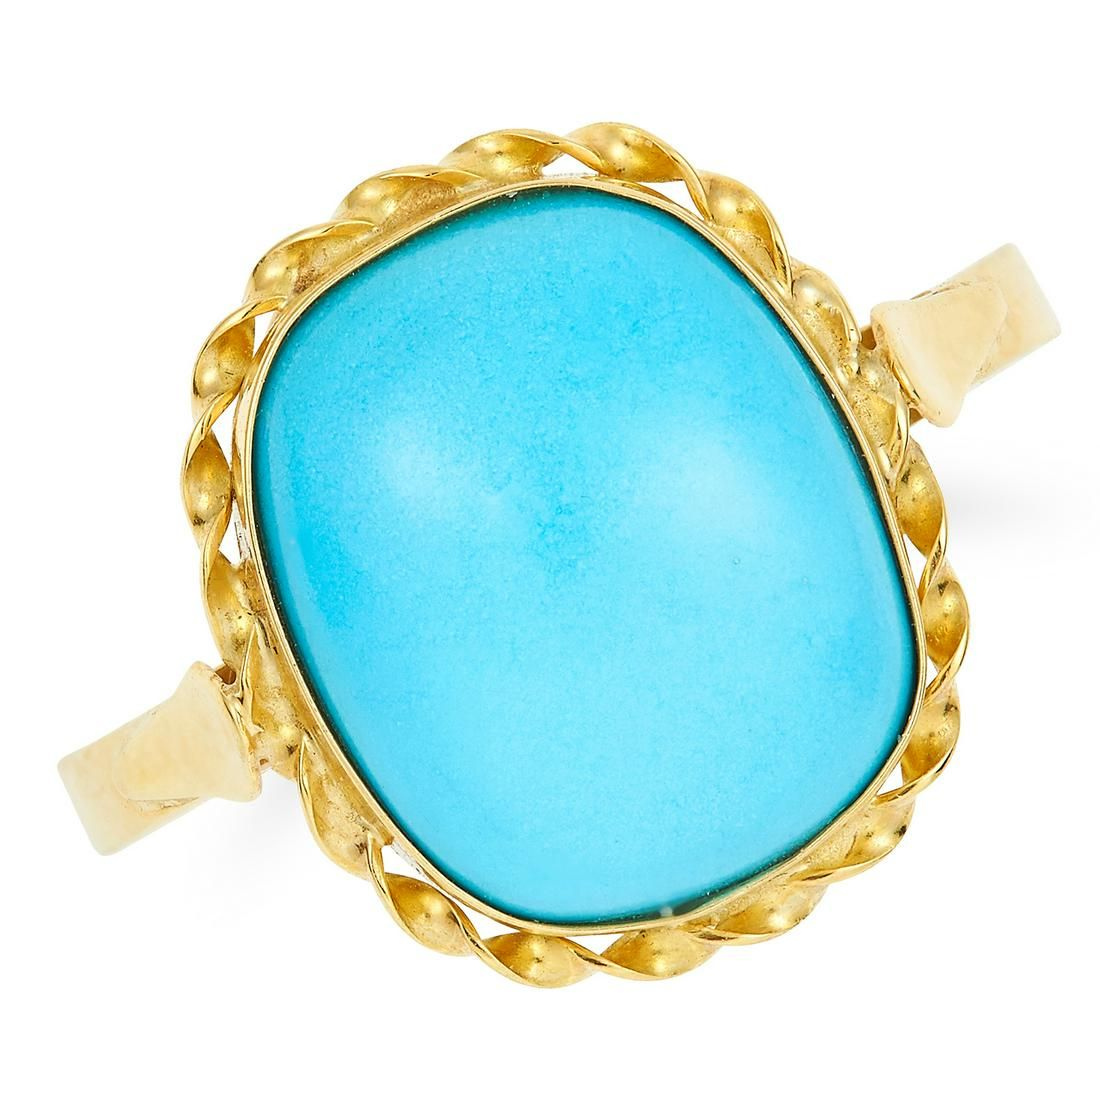 TURQUOISE DRESS RING set with a cushion shaped